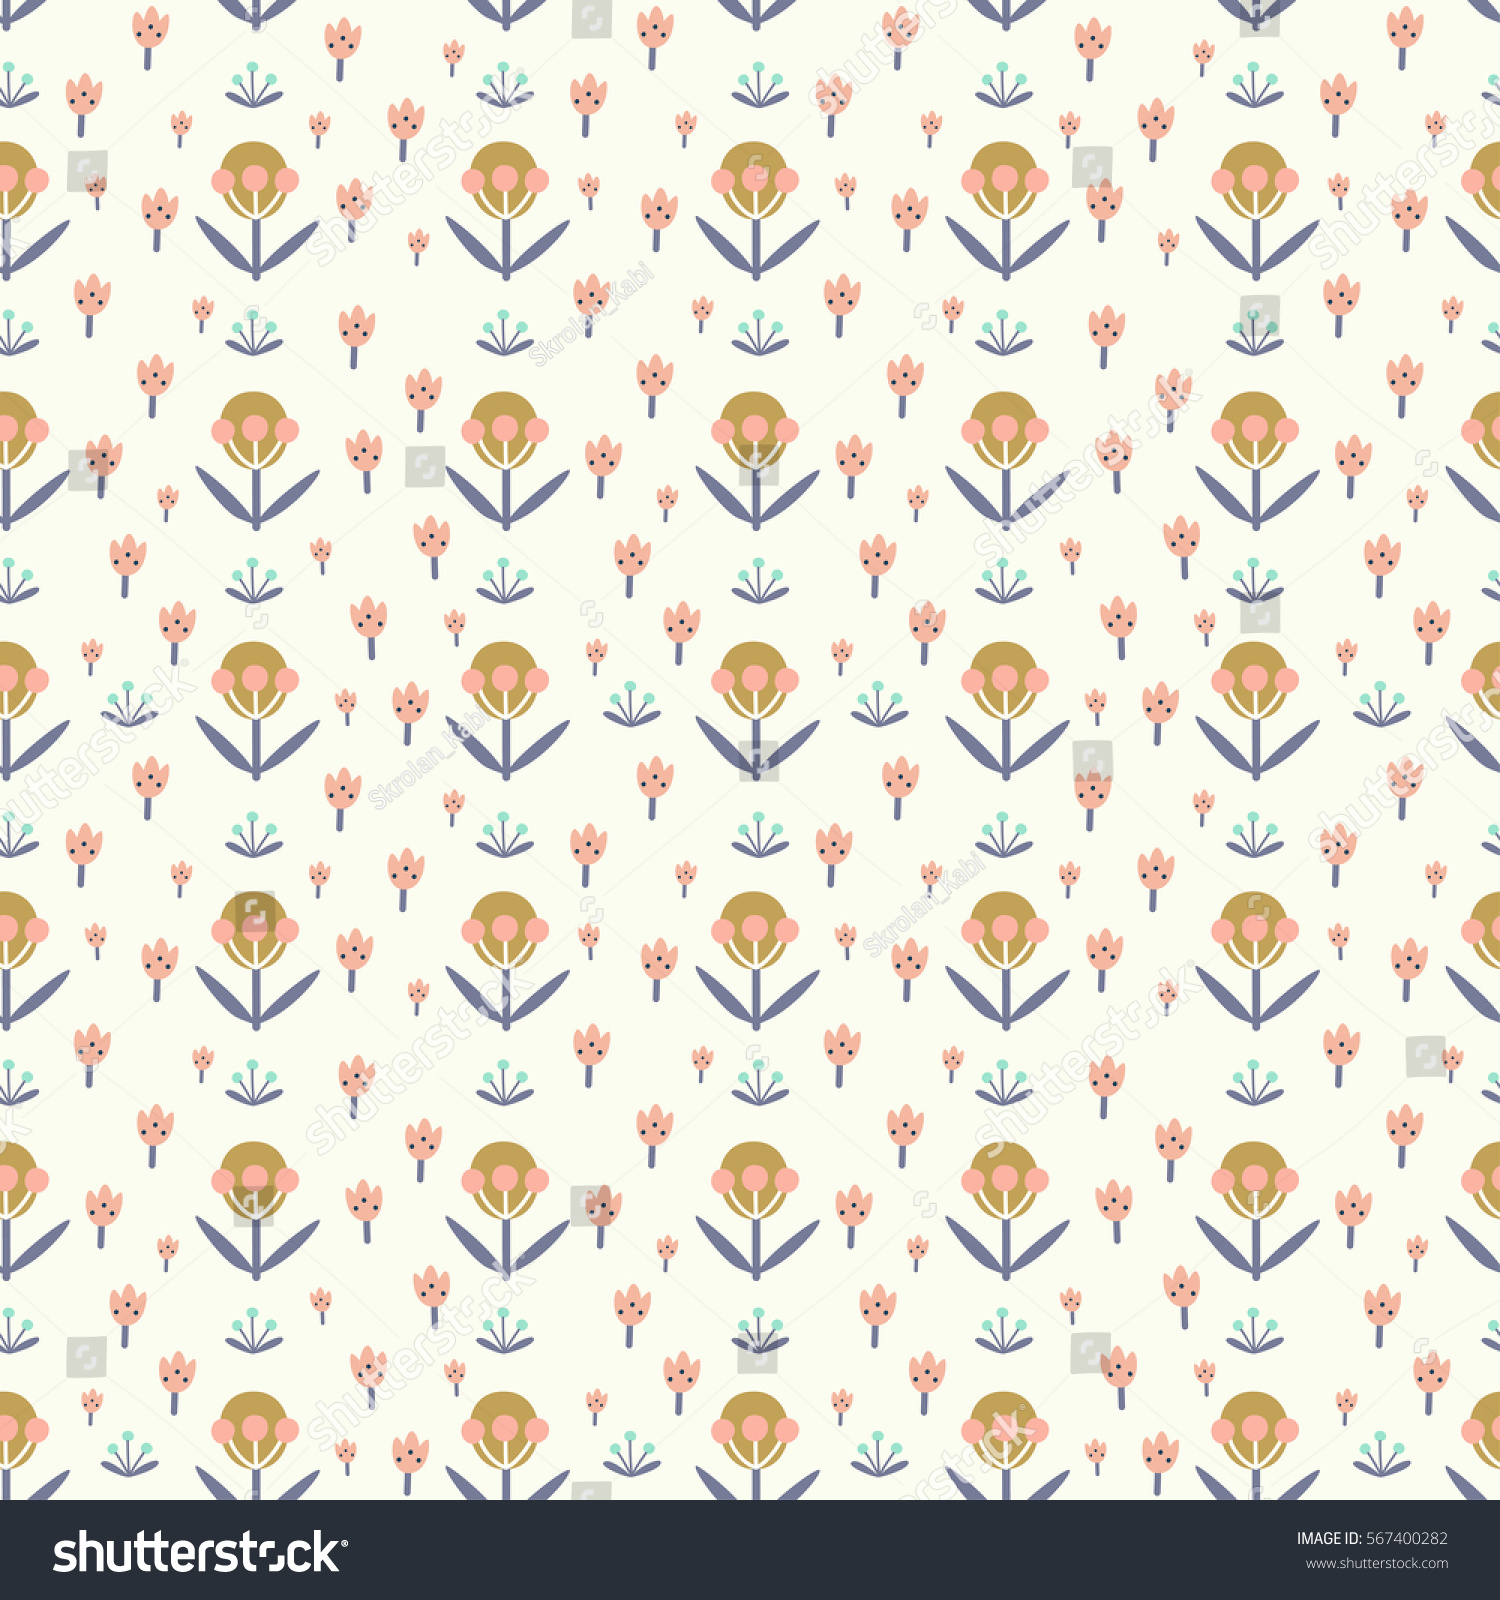 Poster design wallpaper - Seamless Floral Pattern With Hand Drawn Elements Can Be Used For Wallpaper Poster Design